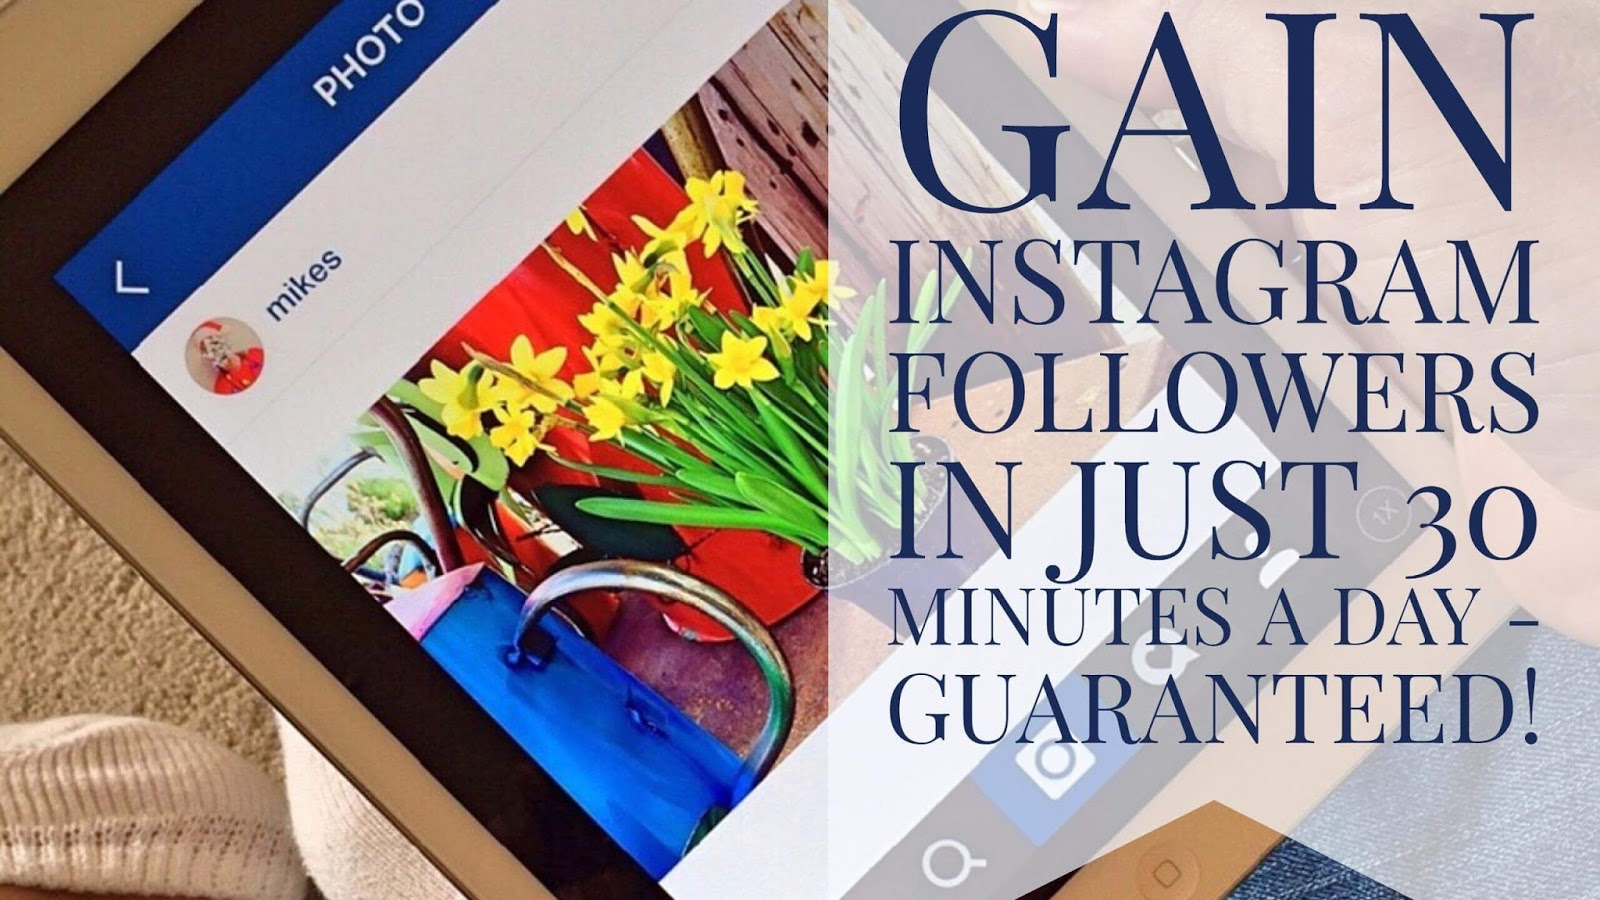 How to get instagram followers for free from buy instagram apps - Gain Instagram Followers And Engagement For Free With Two 15 Minutes Sitting Per Day Create